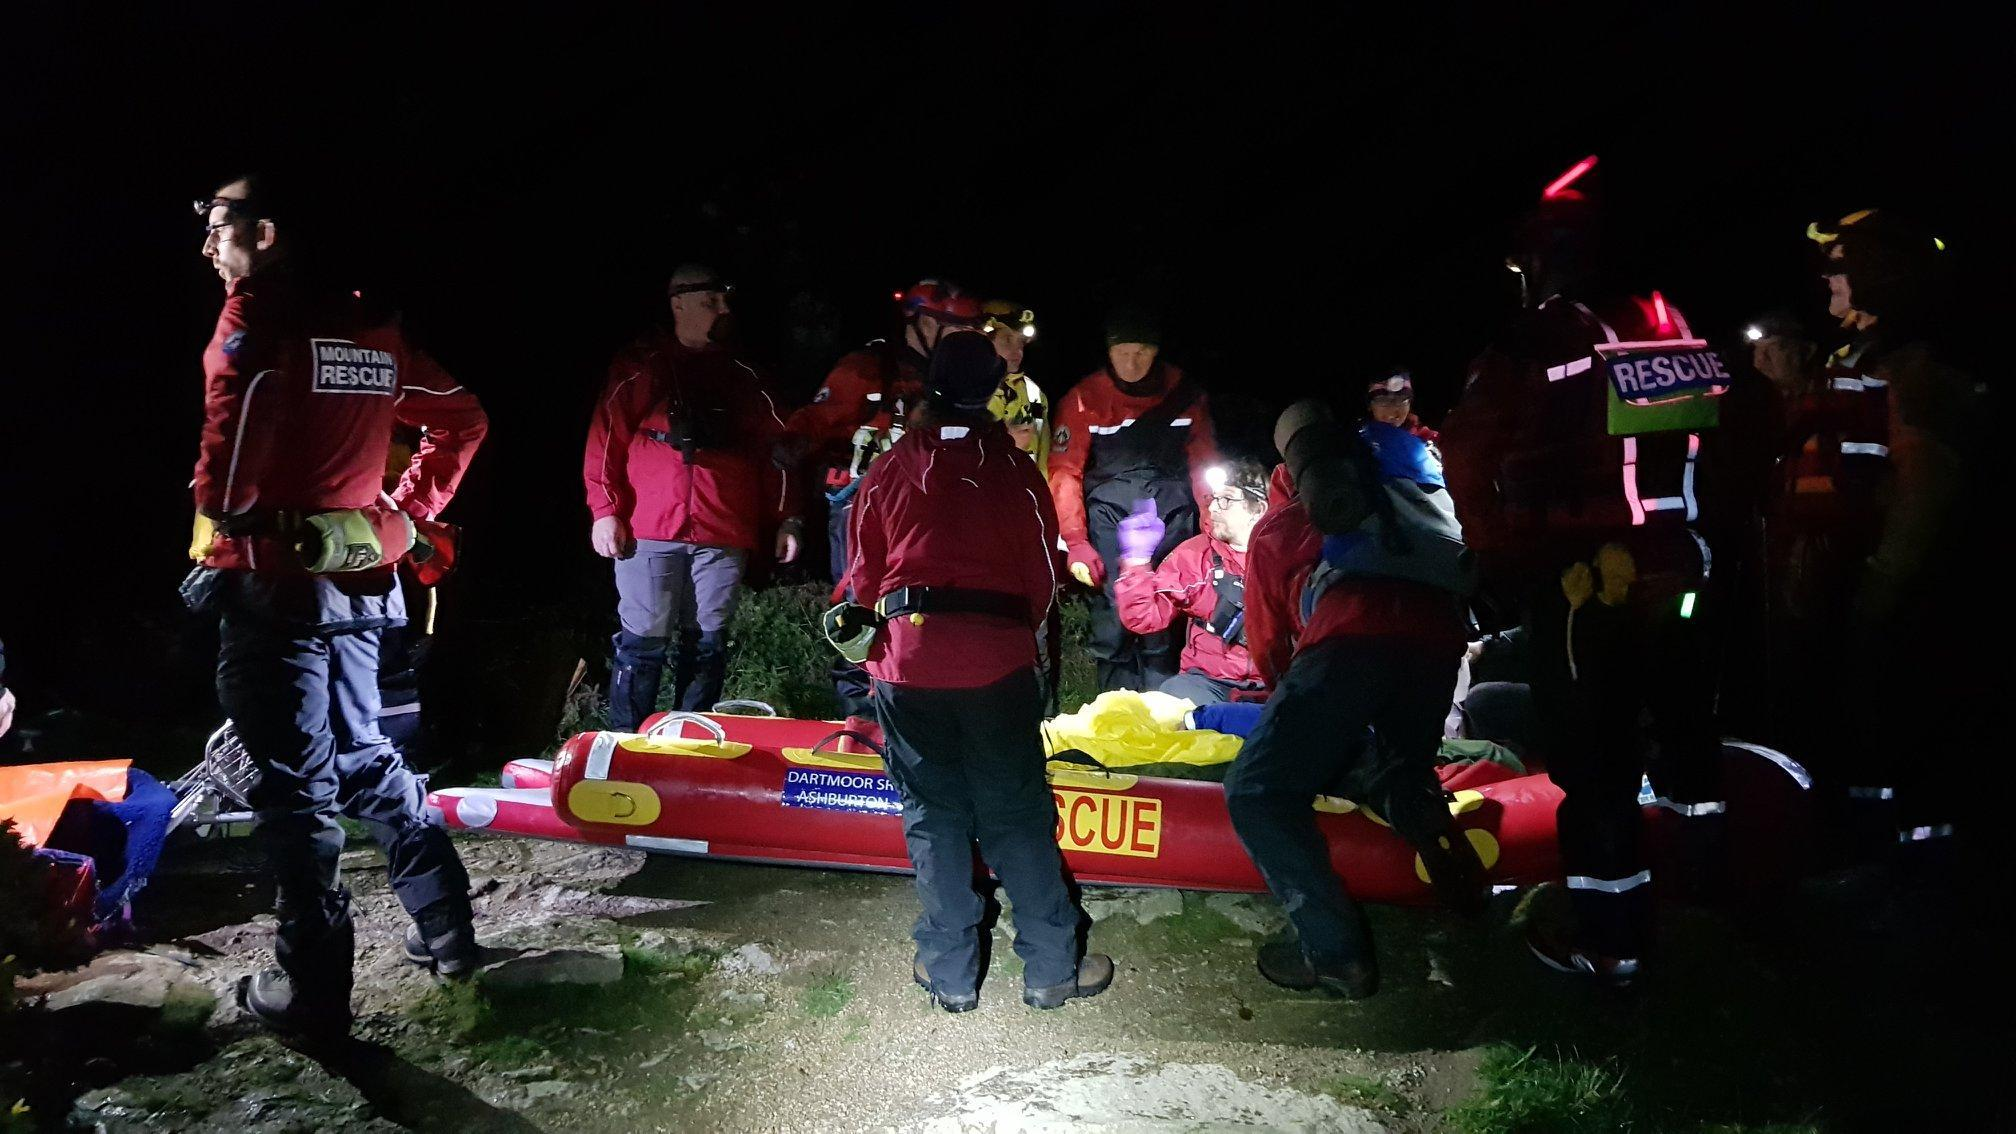 A casualty receives CPR on a Dartmoor rescue sled after being rescued from a rock ledge by a pond